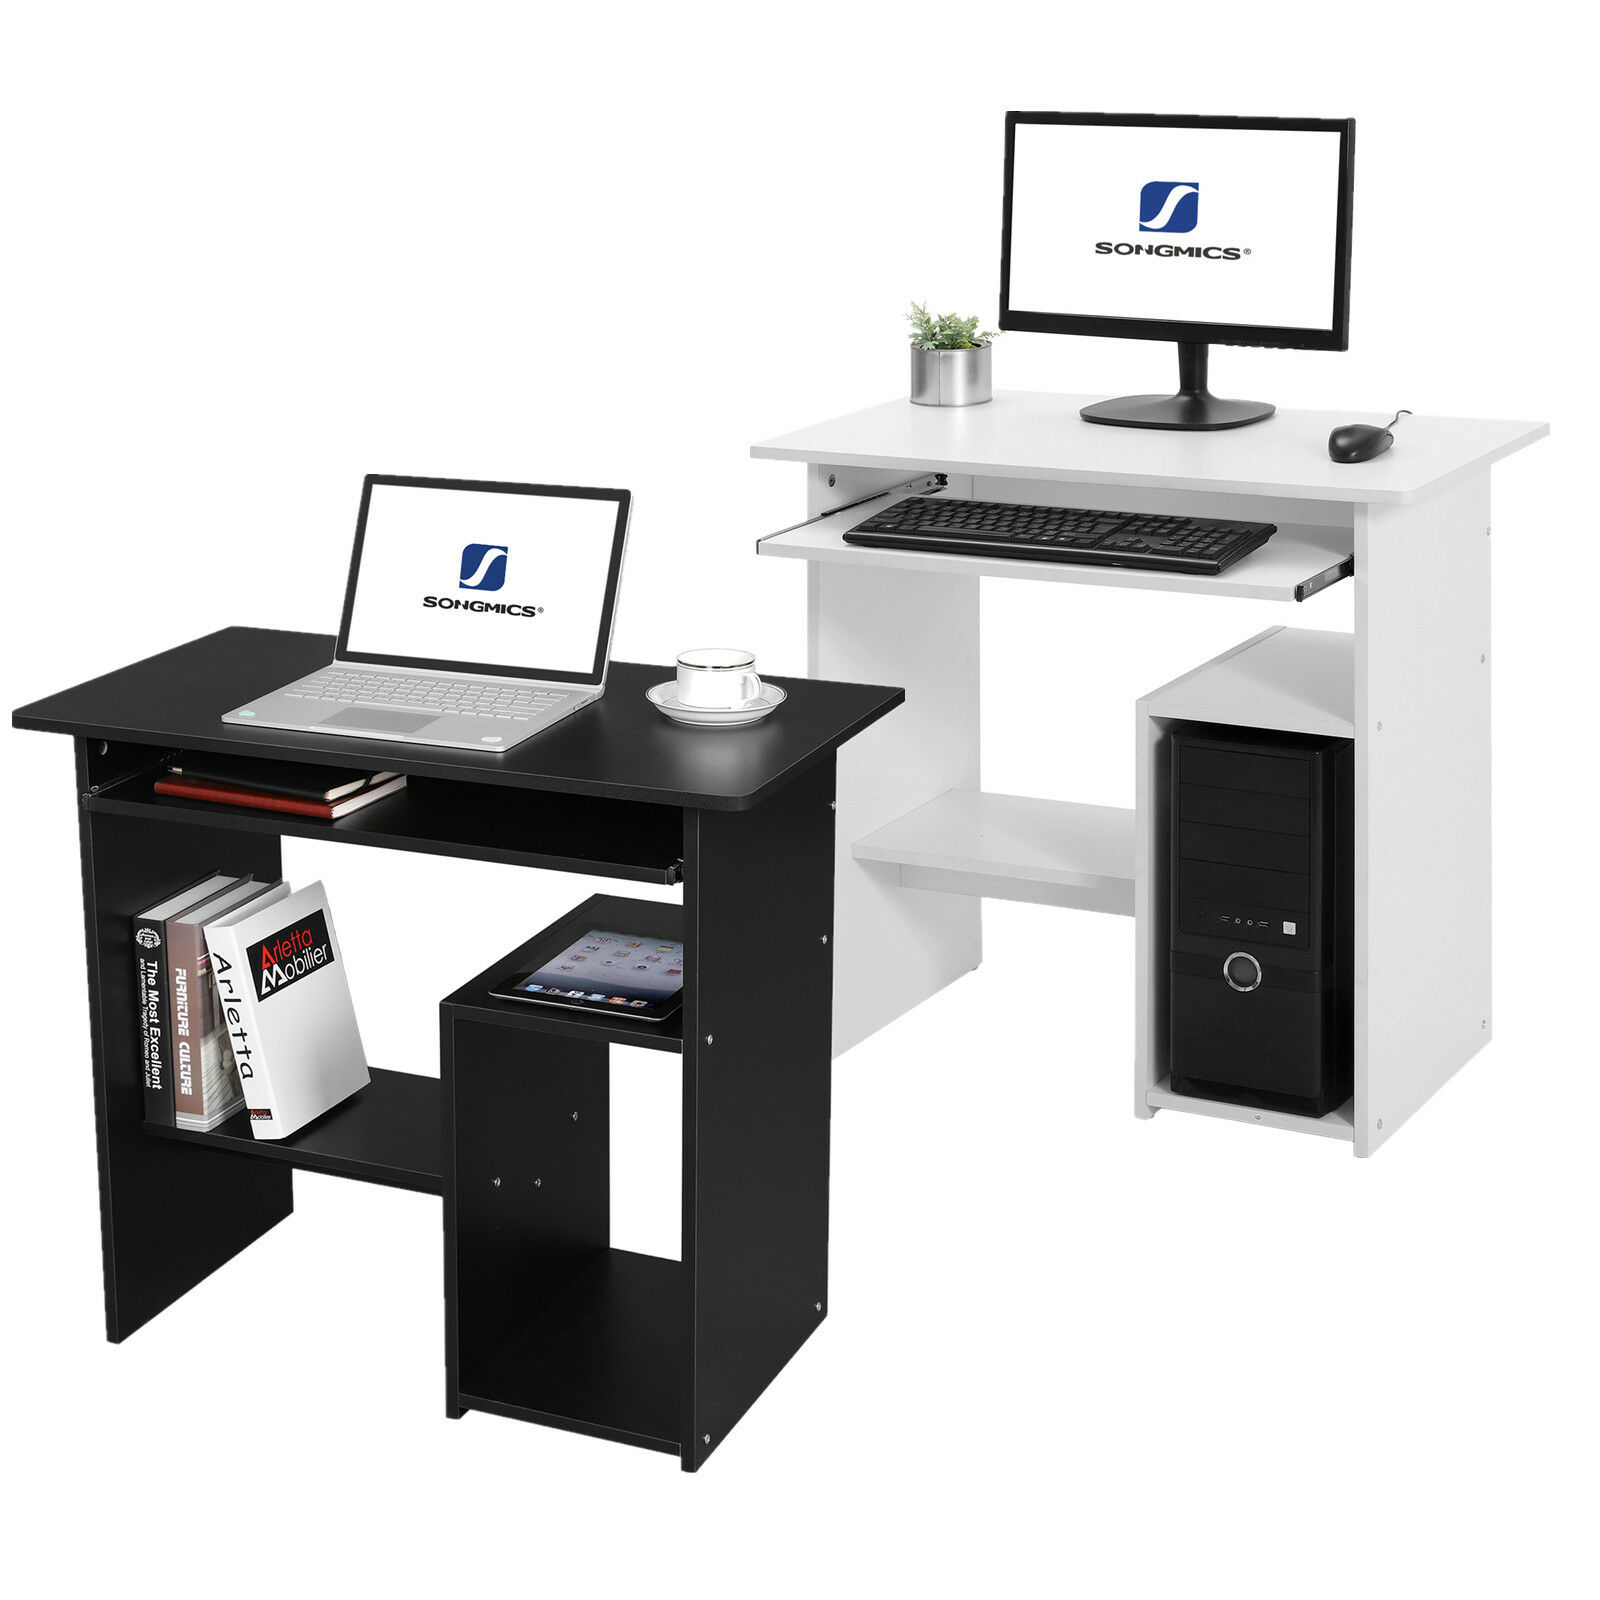 songmics bureau informatique table informatique meuble de bureau pour ordinateur eur 46 99. Black Bedroom Furniture Sets. Home Design Ideas